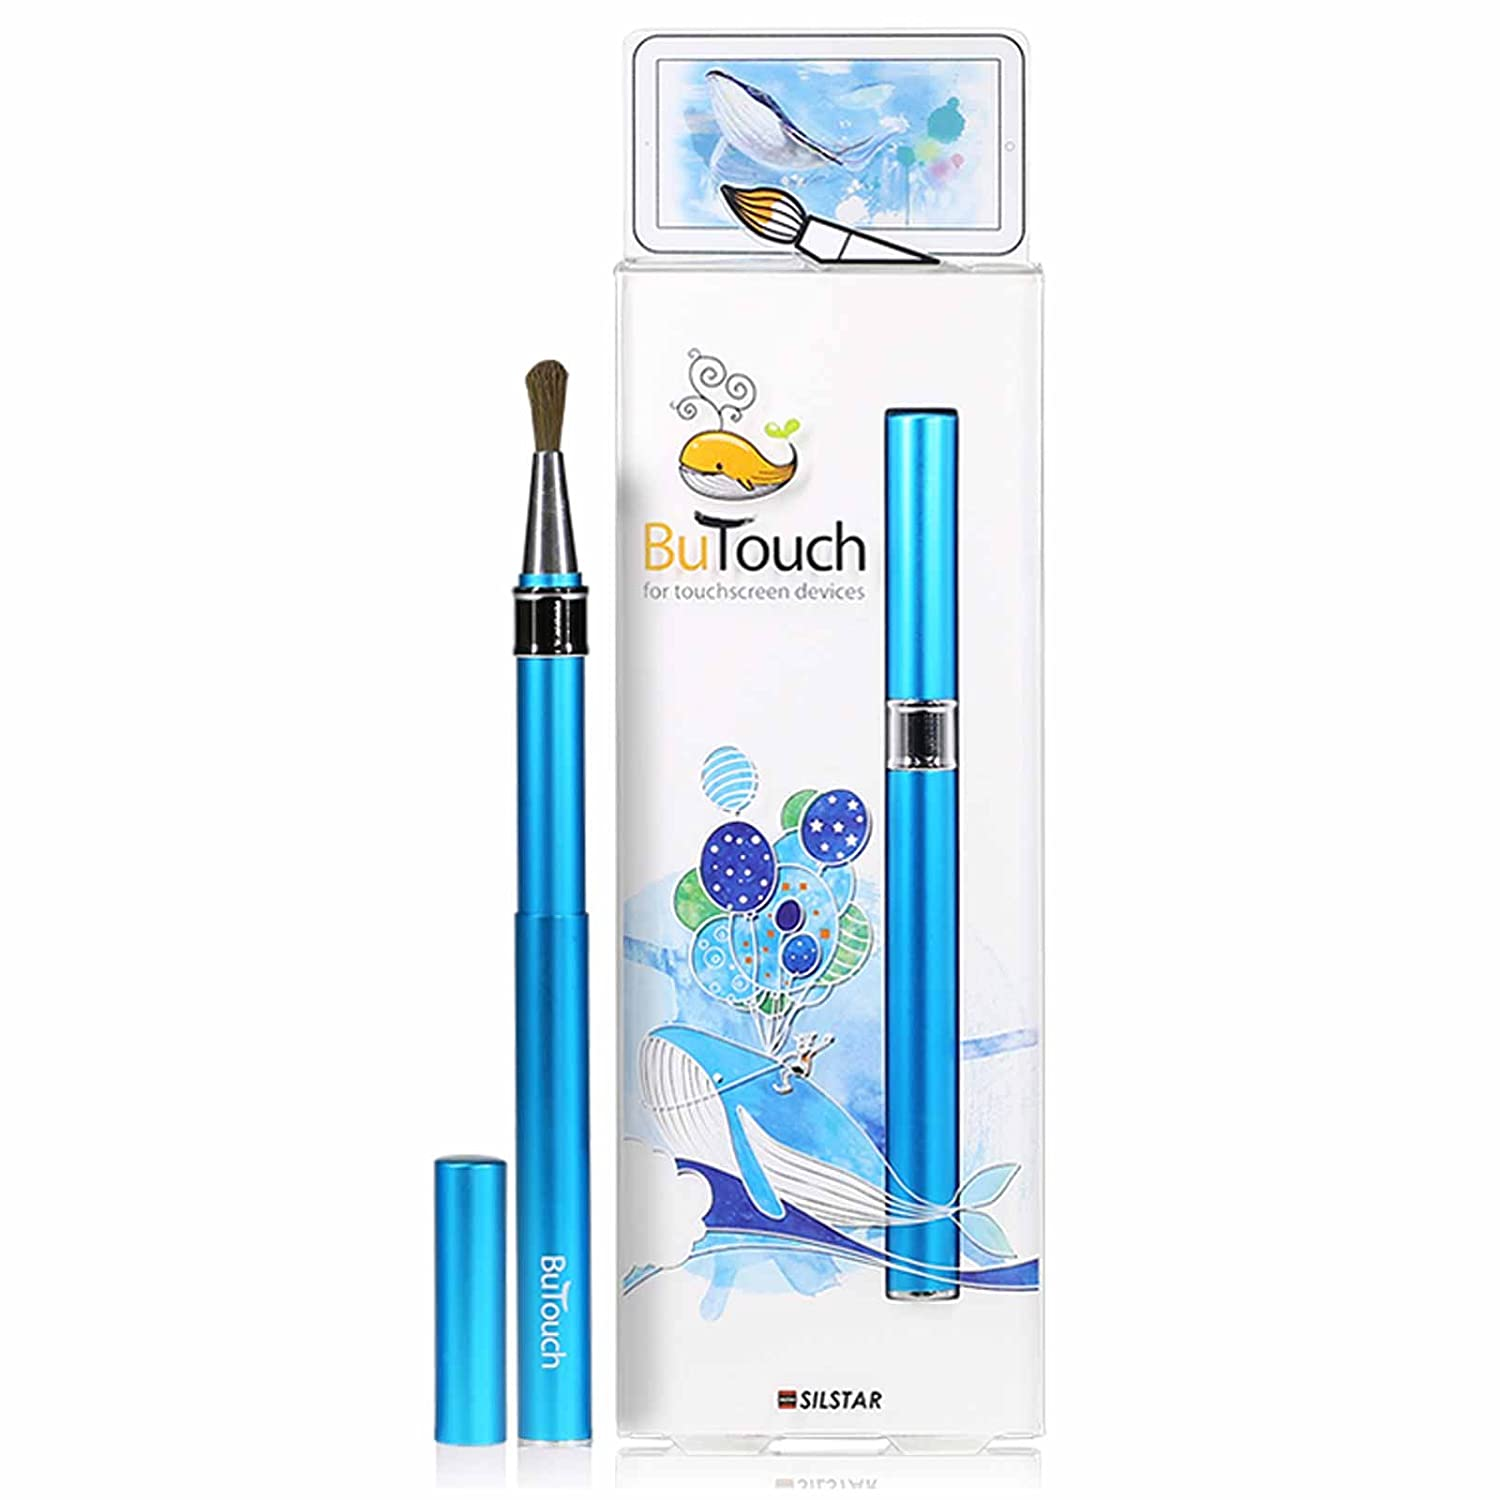 Silstar Butouch Digital Artist Touch Brush Stylus Pen For Android iPhone Tablet